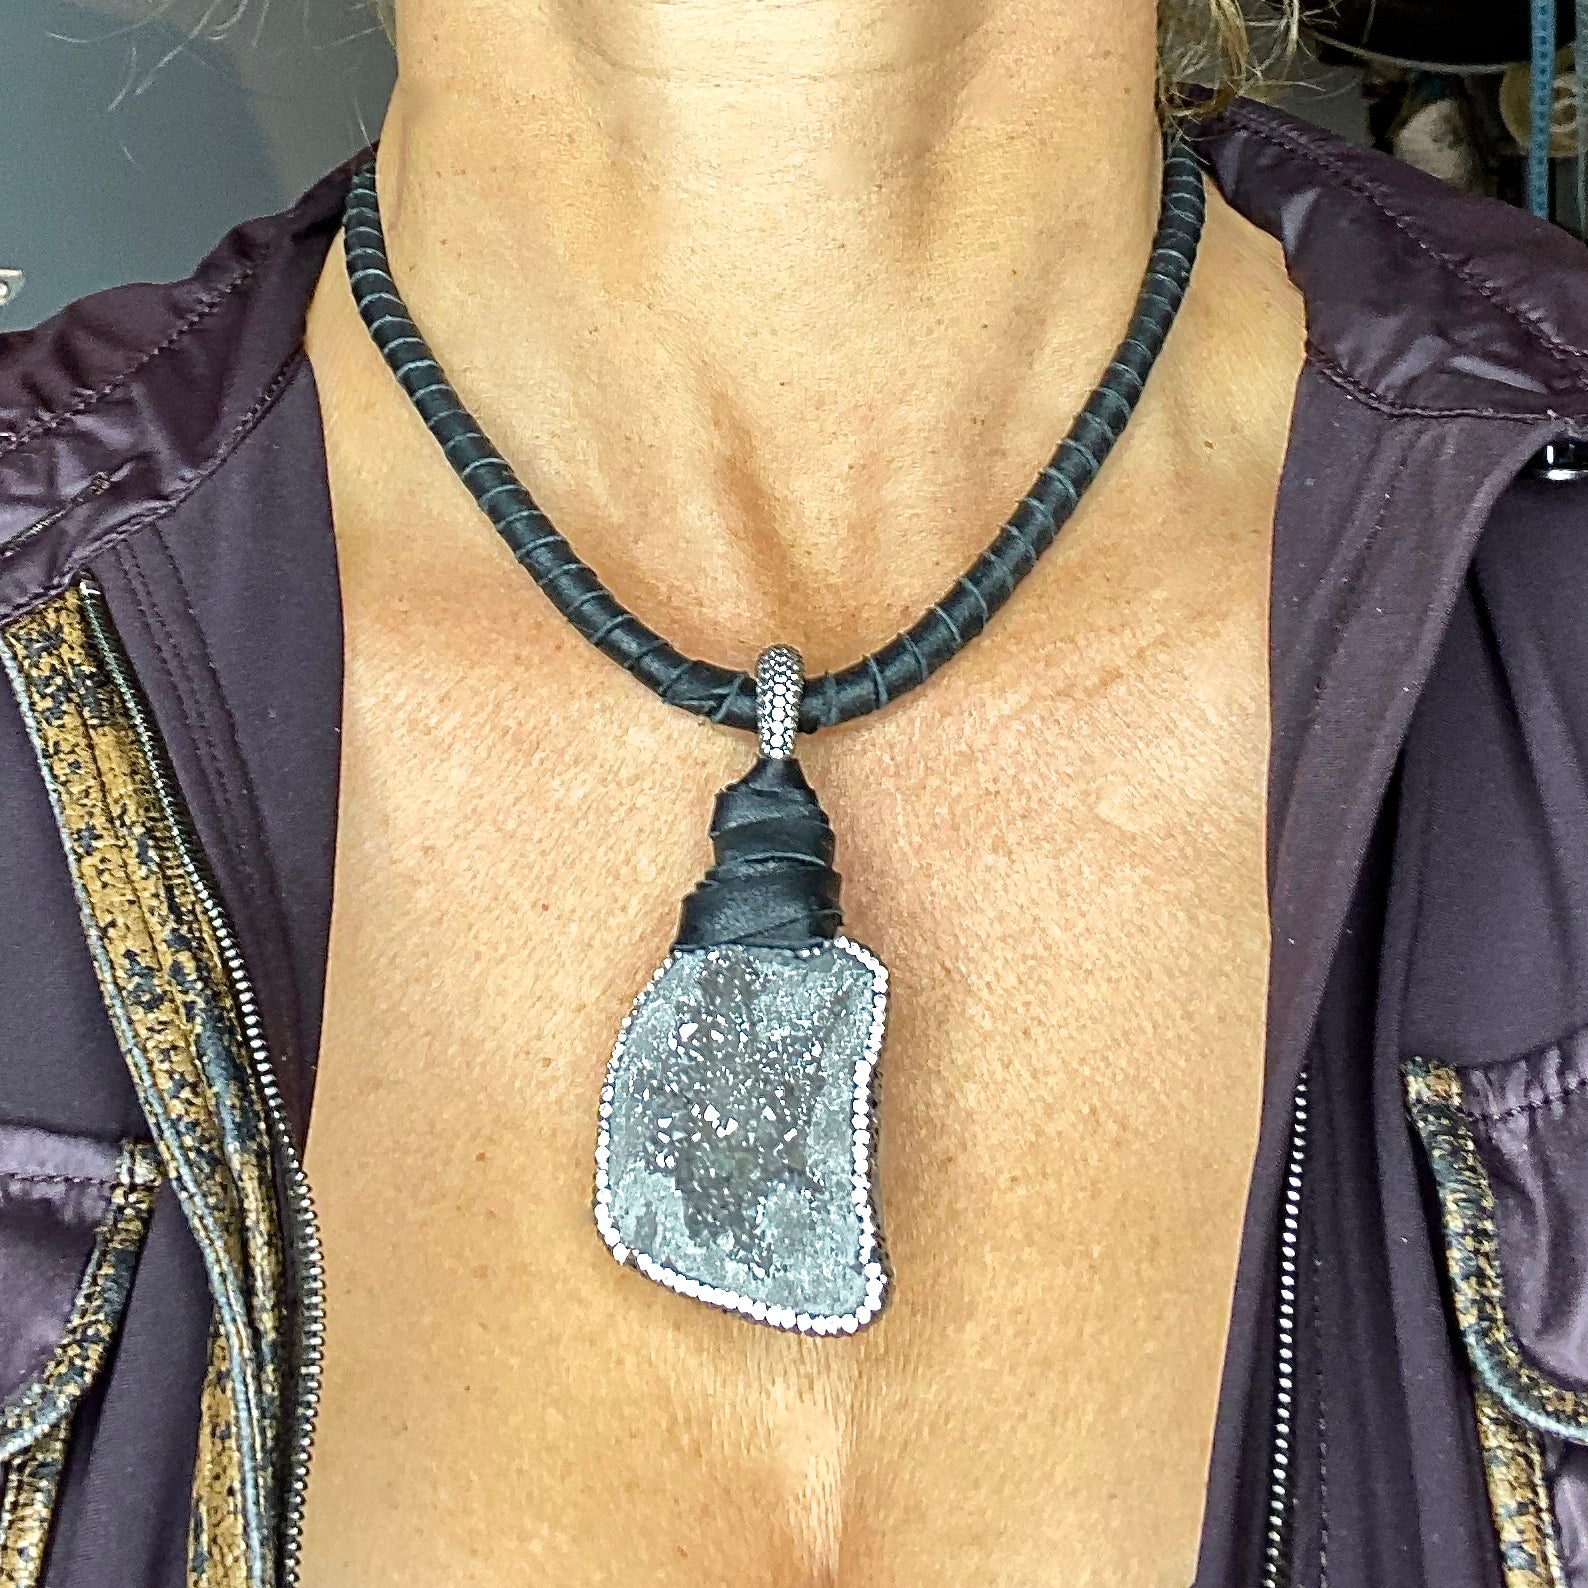 Silver druzy stone and deerskin necklace by NYET Jewelry.